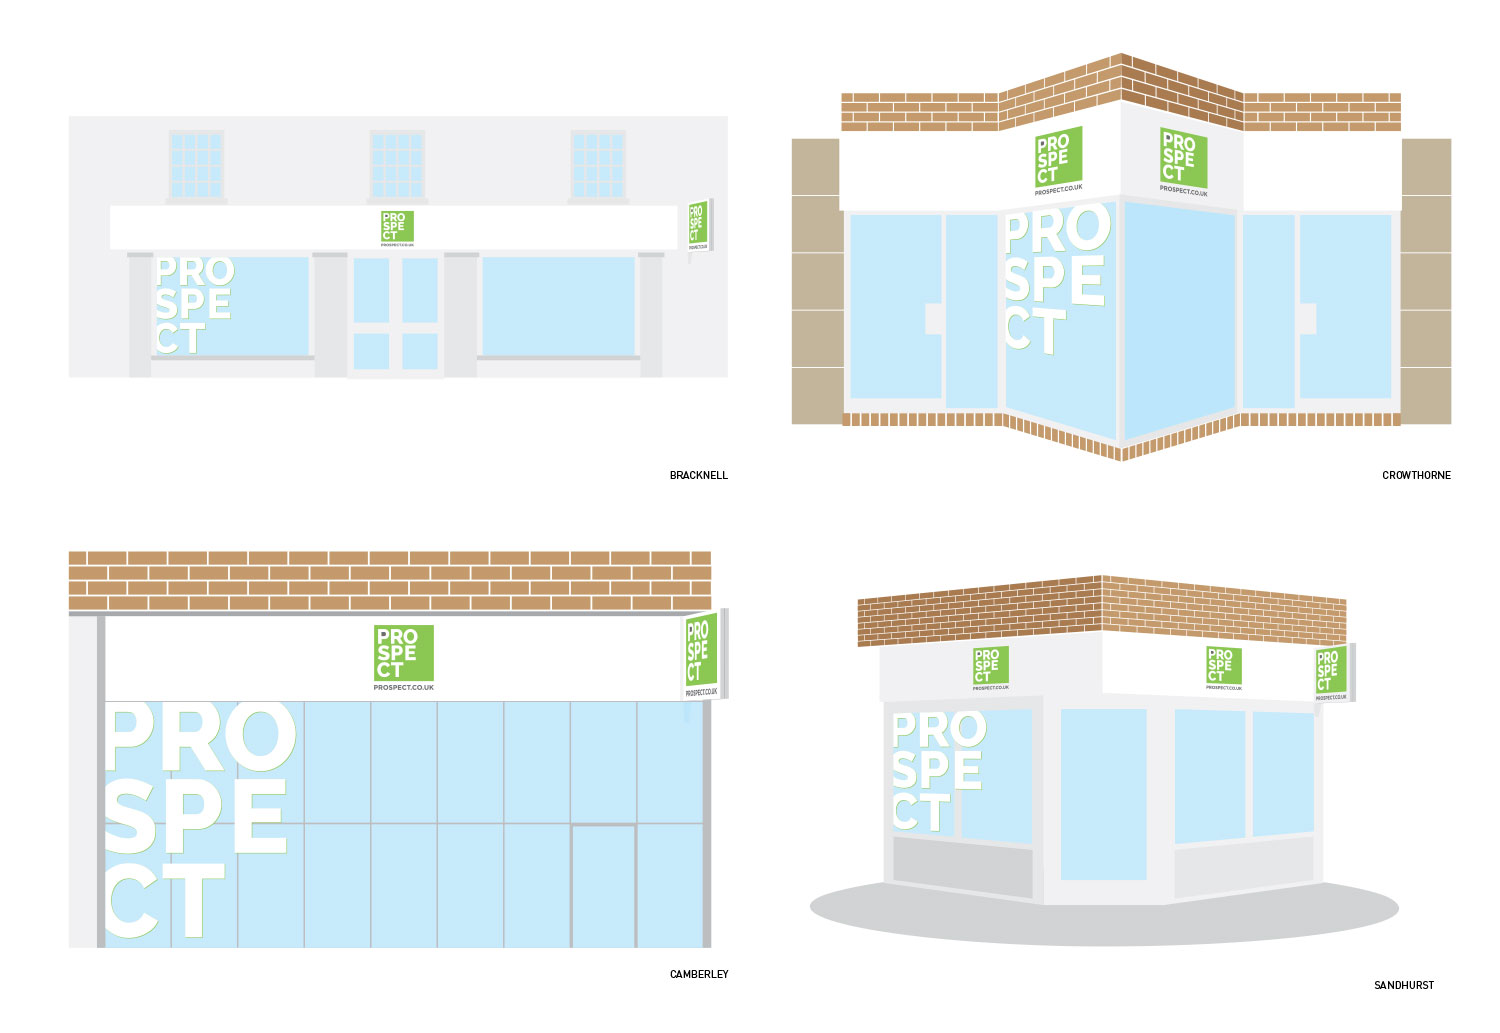 Prospect office fascia designs/concepts